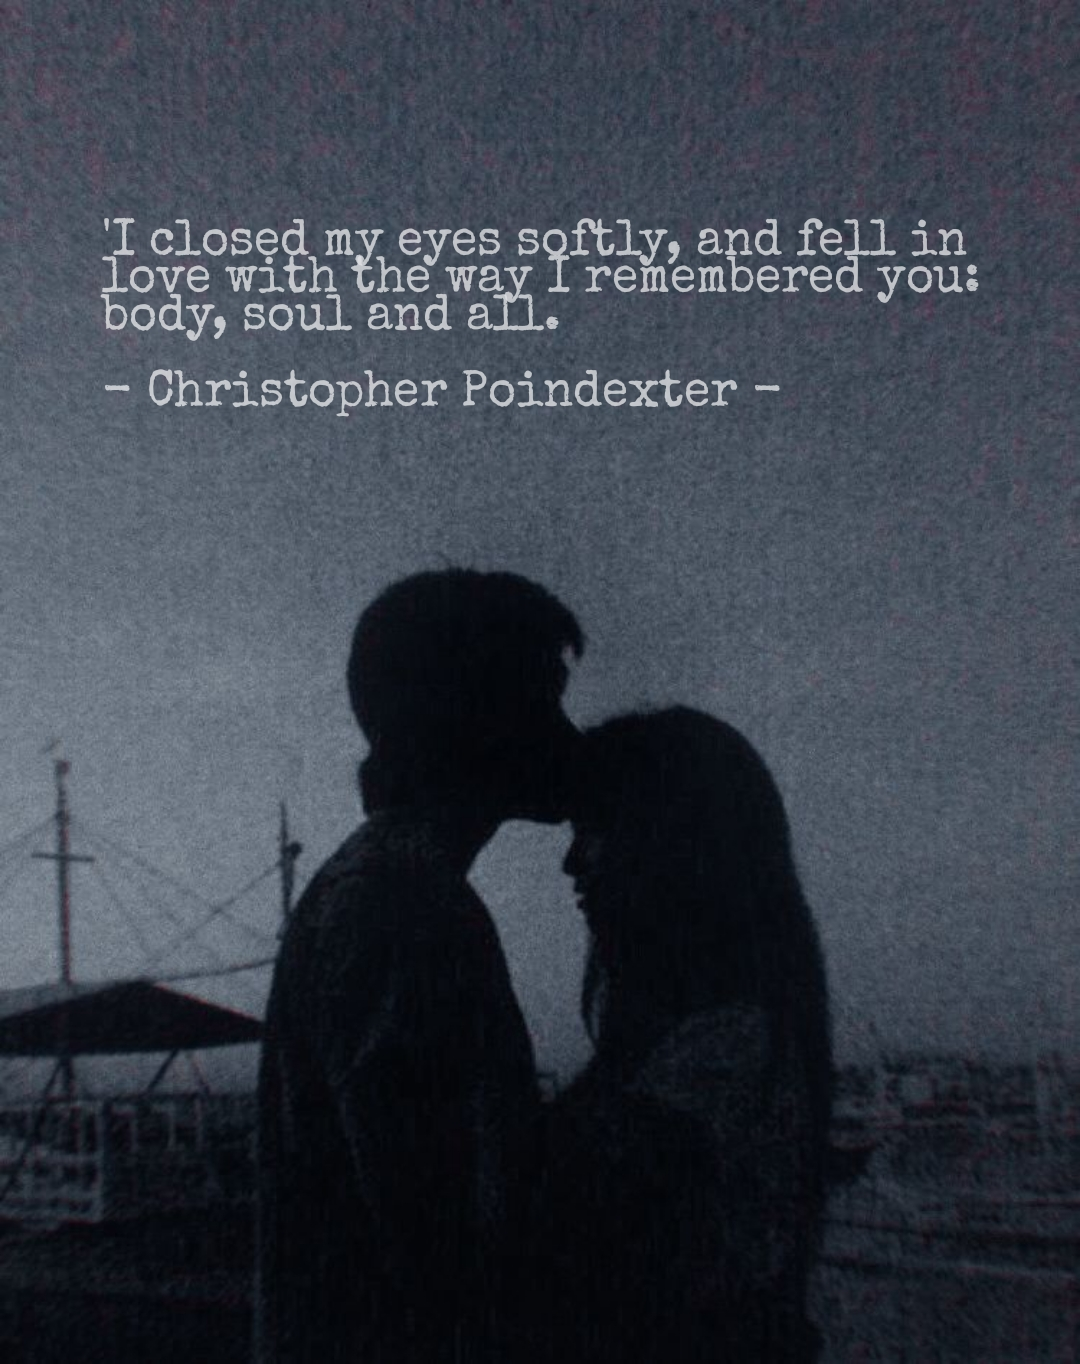 'I closed my eyes softly, and fell in love with the way I remembered you: body, soul and all.' – Christopher Poindexter [750X947]